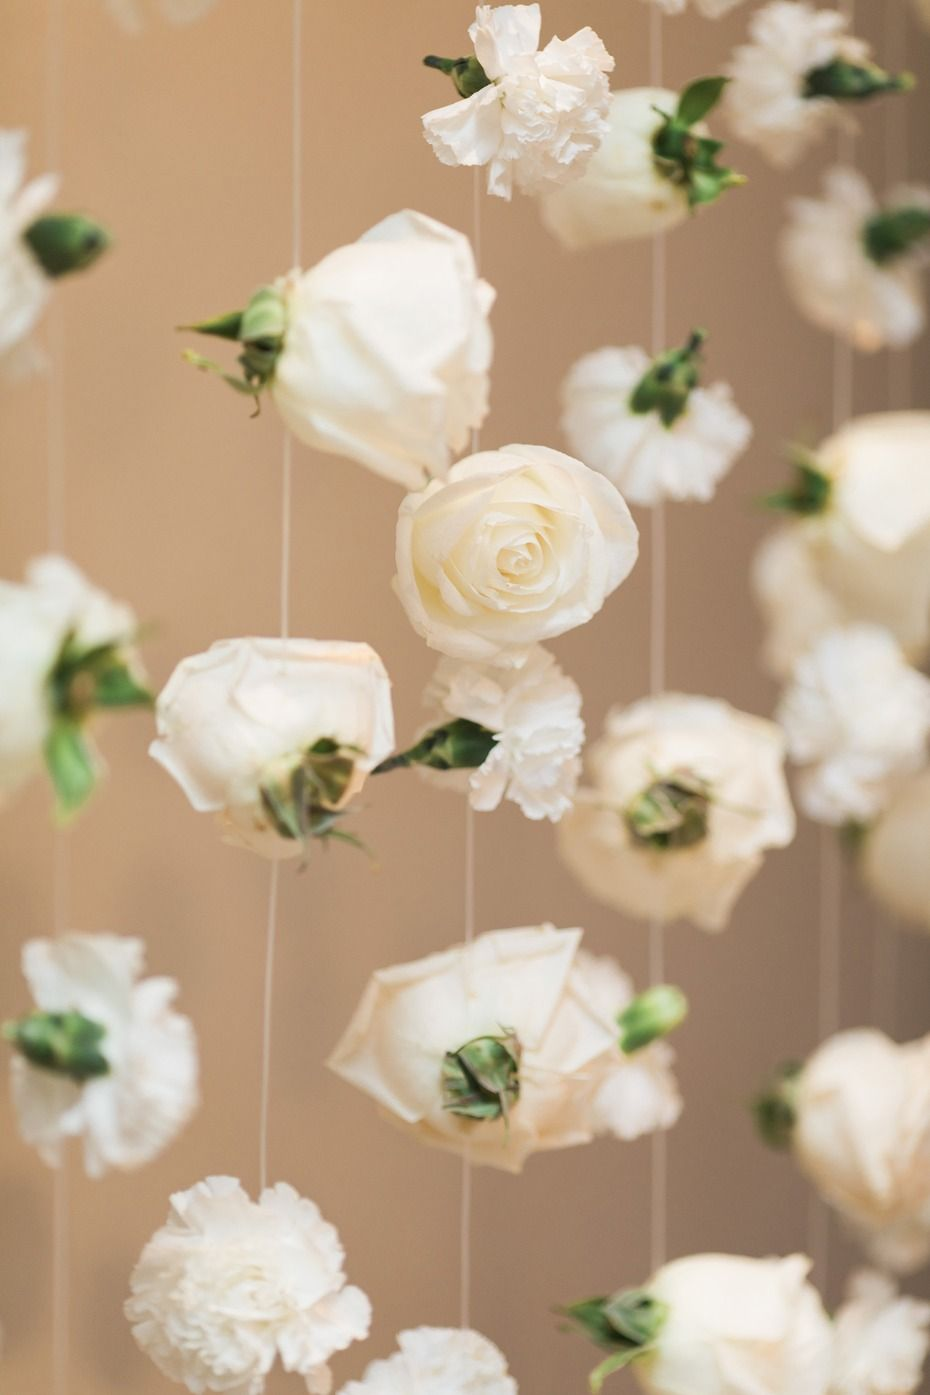 How To Have A Glamorous Pastel Wedding In Texas Flower Wall Wedding Wedding Wall Decorations Flower Backdrop Wedding